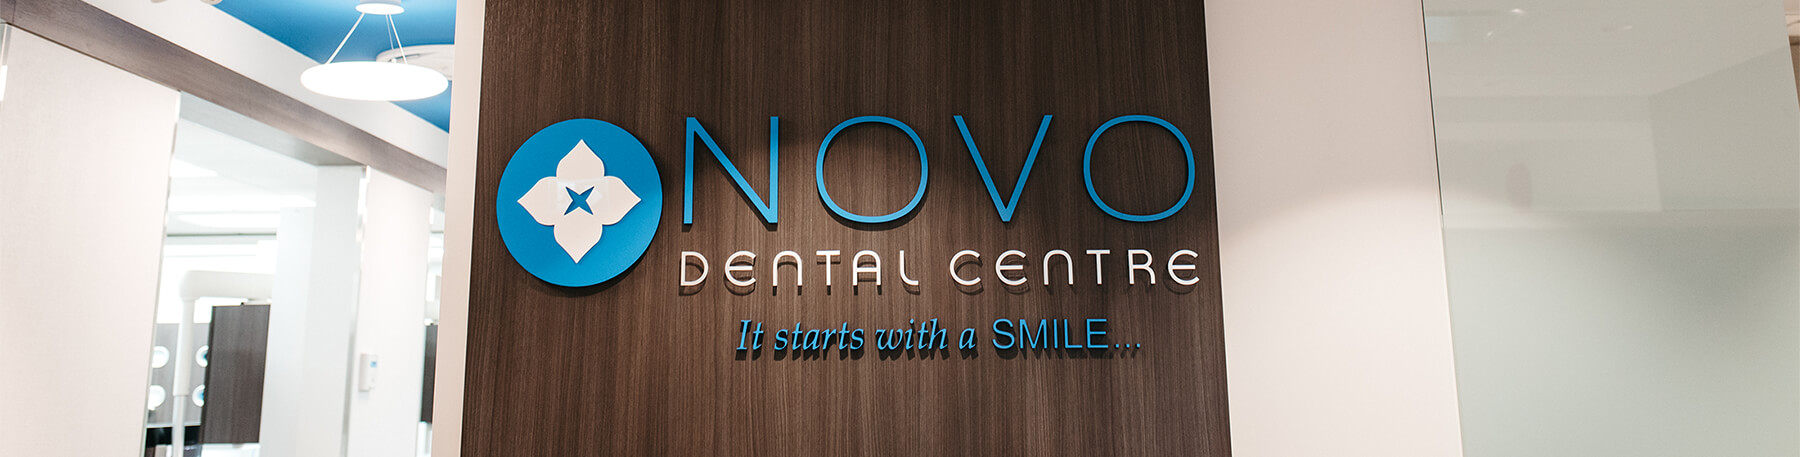 NOVO Dental Center - Sign in our new office